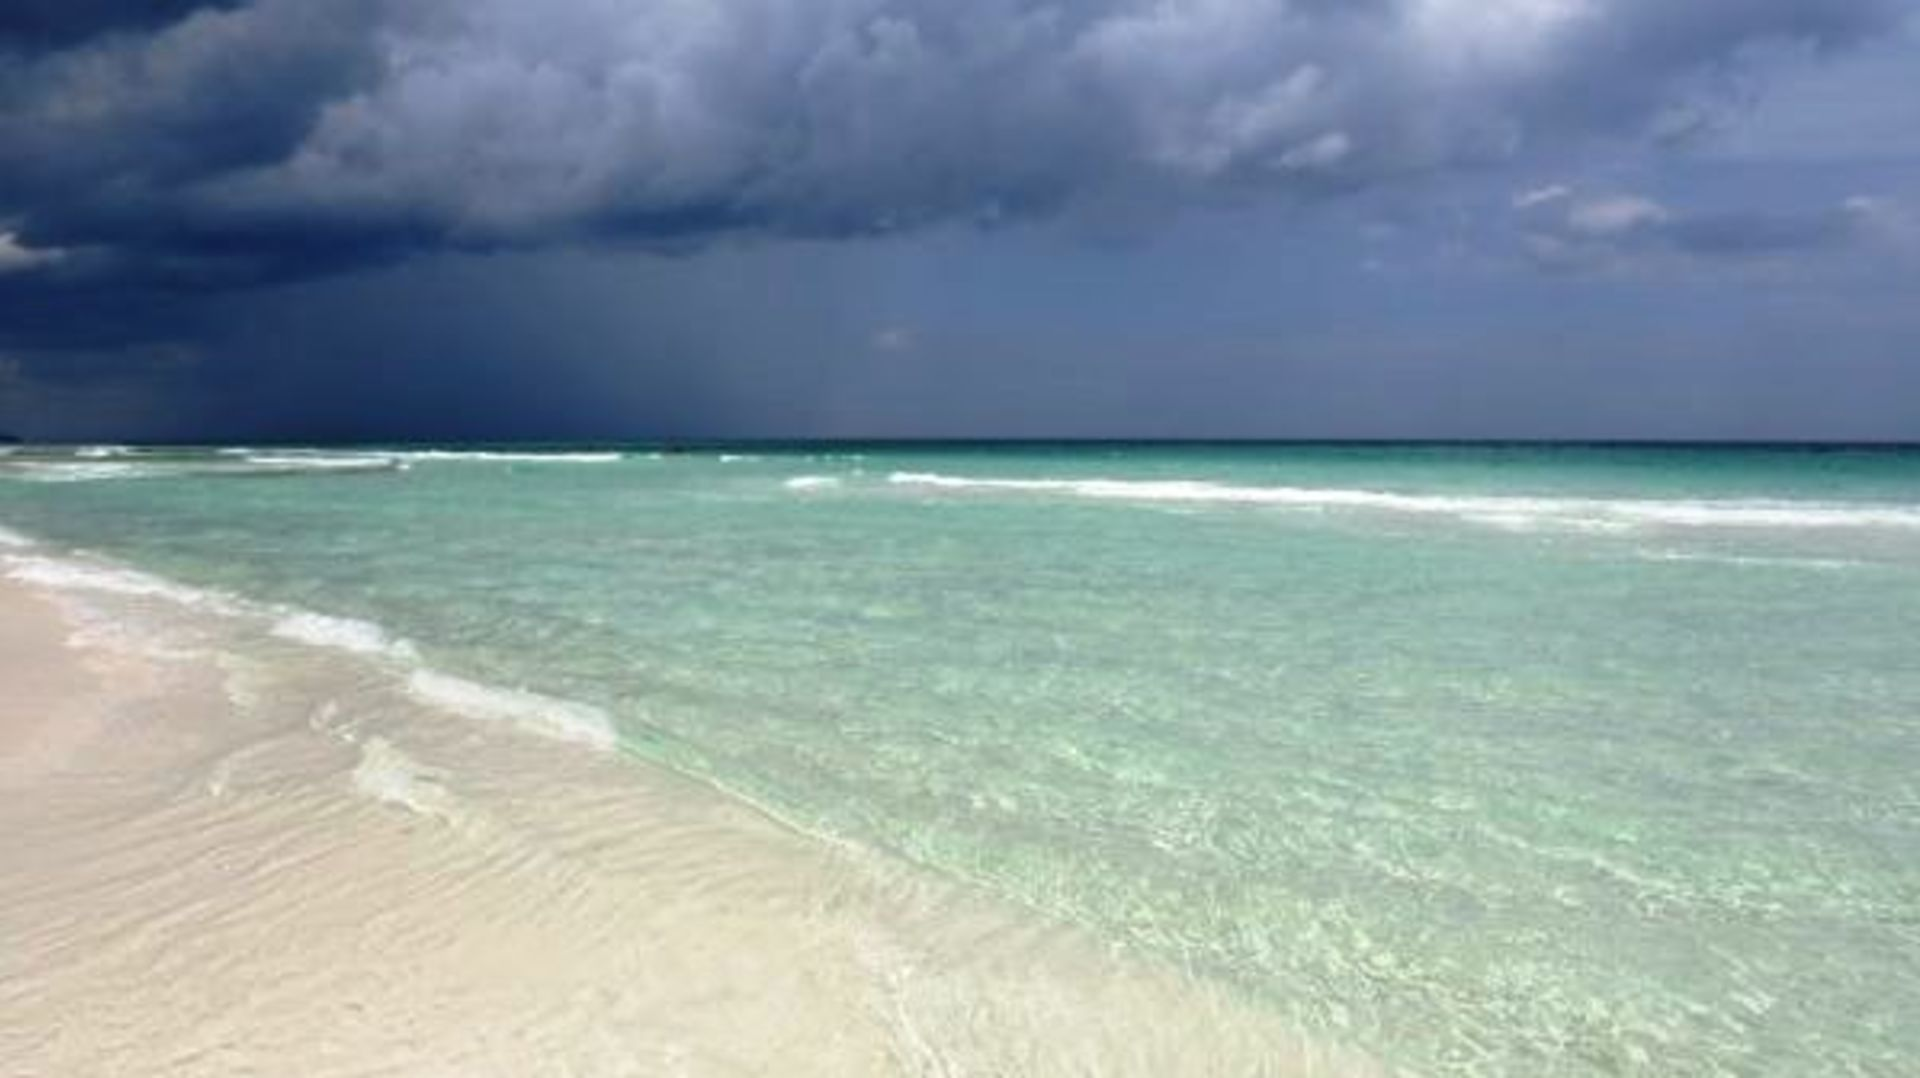 It's a rainy day in Destin! Now what?!?!